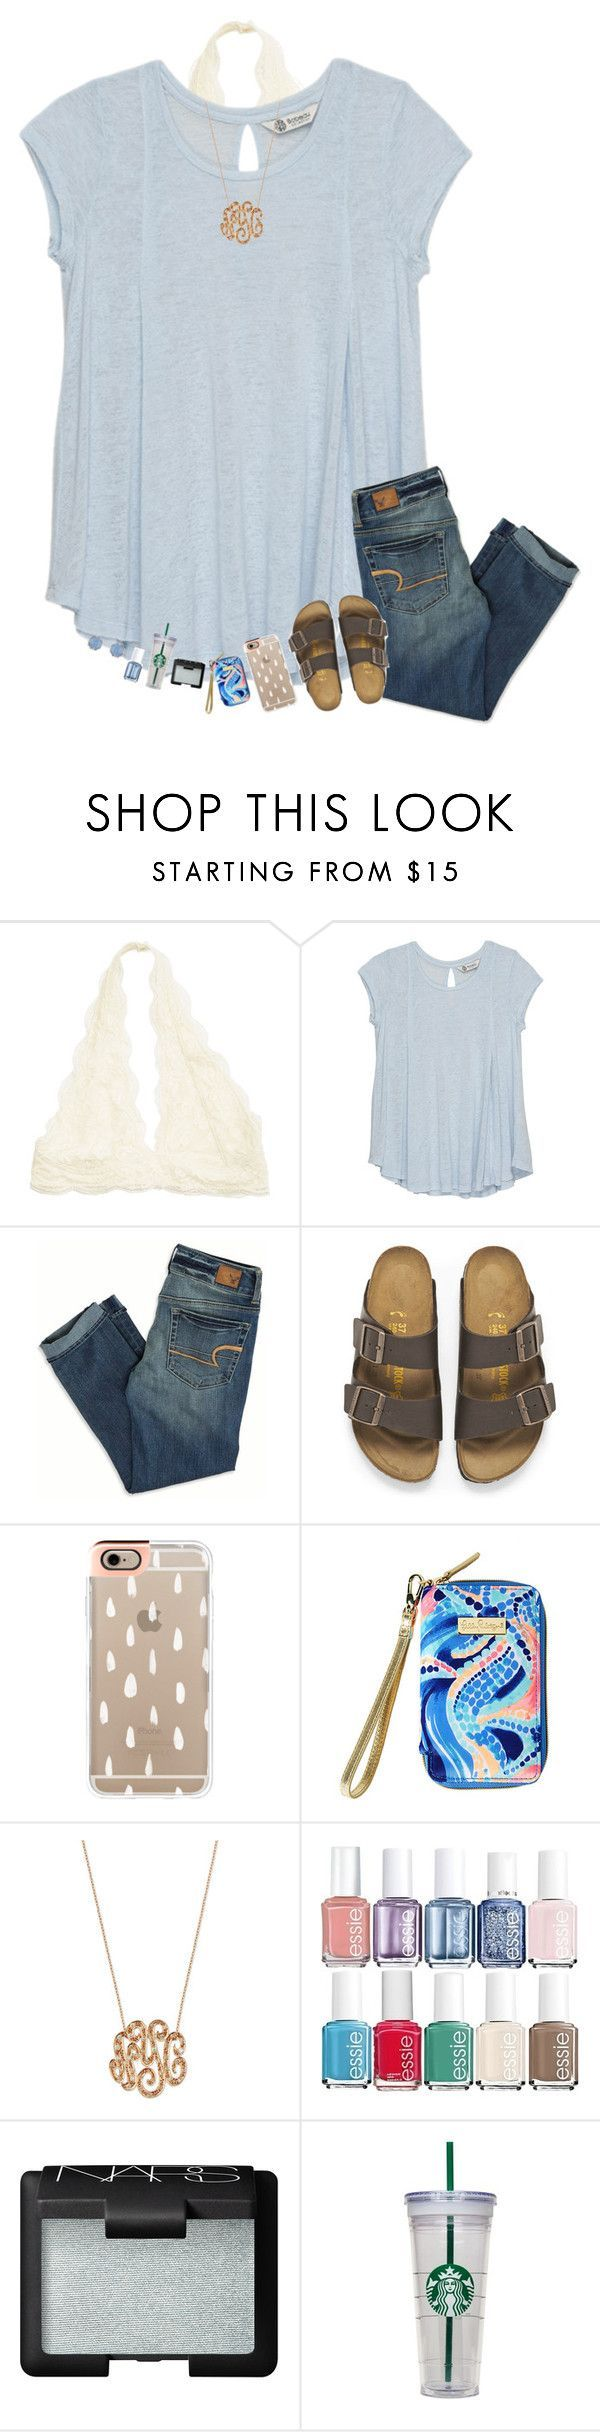 Polyvore featuring Bobeau, American Eagle Outfitters, Birkenstock, Casetify, Lilly Pulitzer, Ginette NY, Essie, NARS Cosmetics and Accessorize